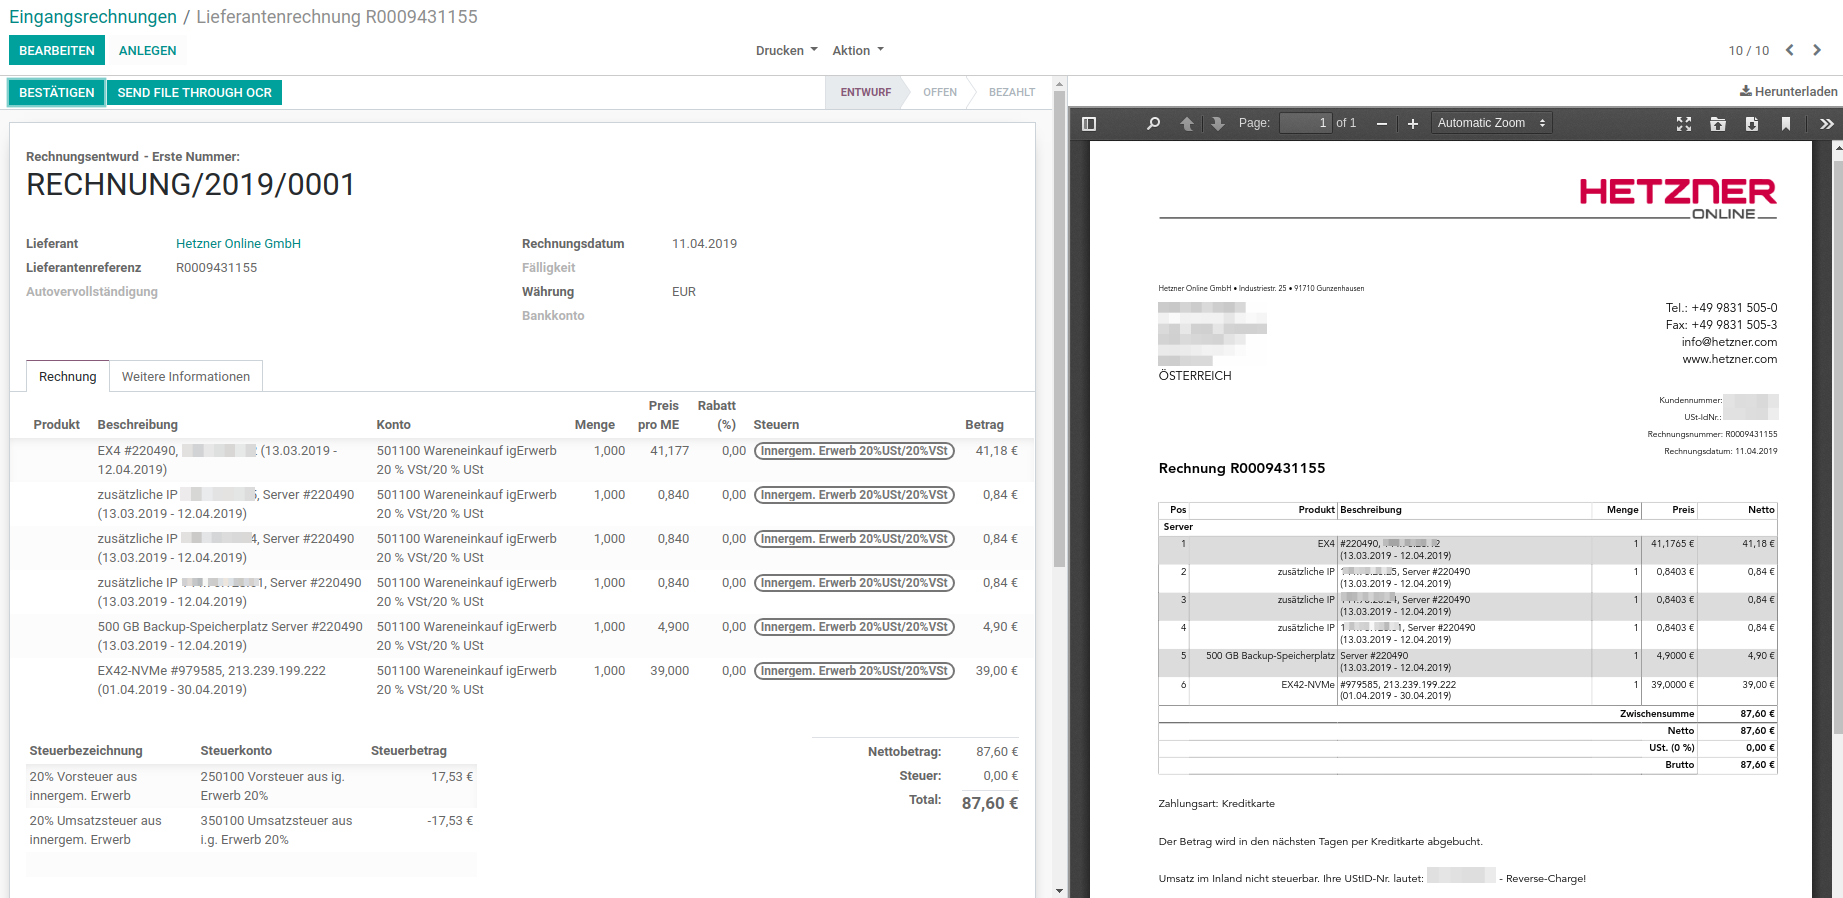 odoo und OCR Interface